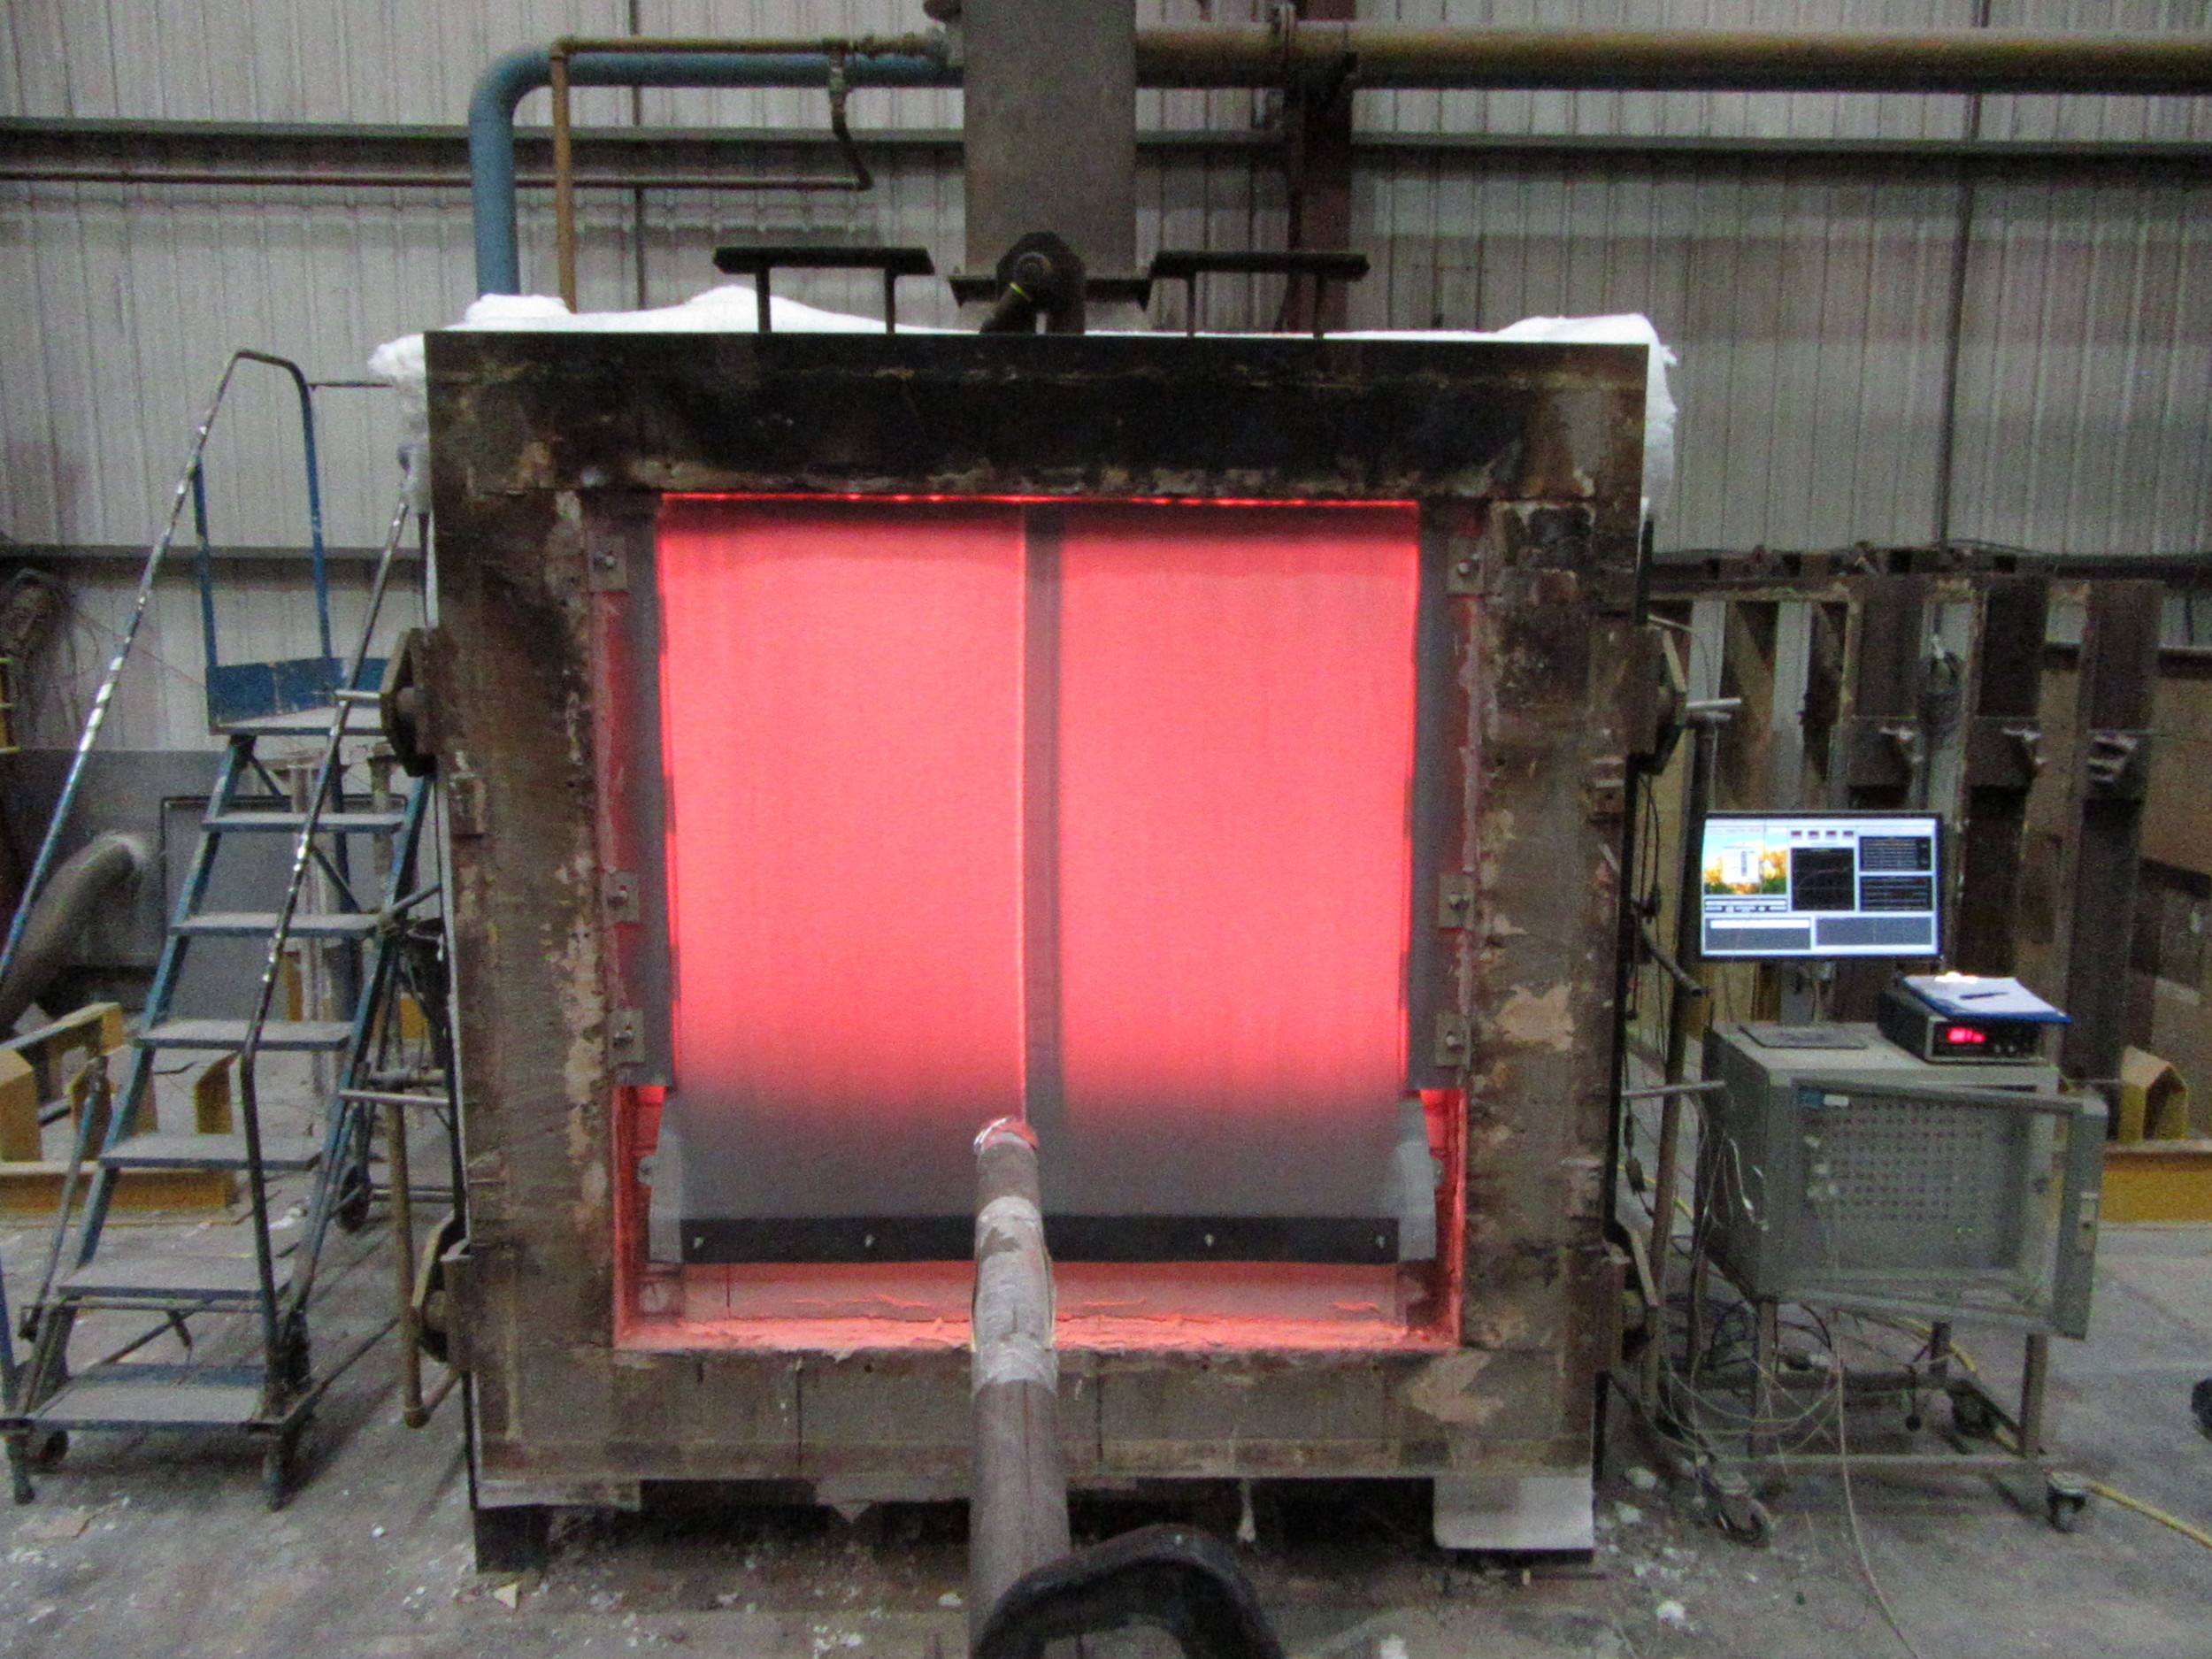 Small scale testing of the Kent Fire Curtain for oversize assessment